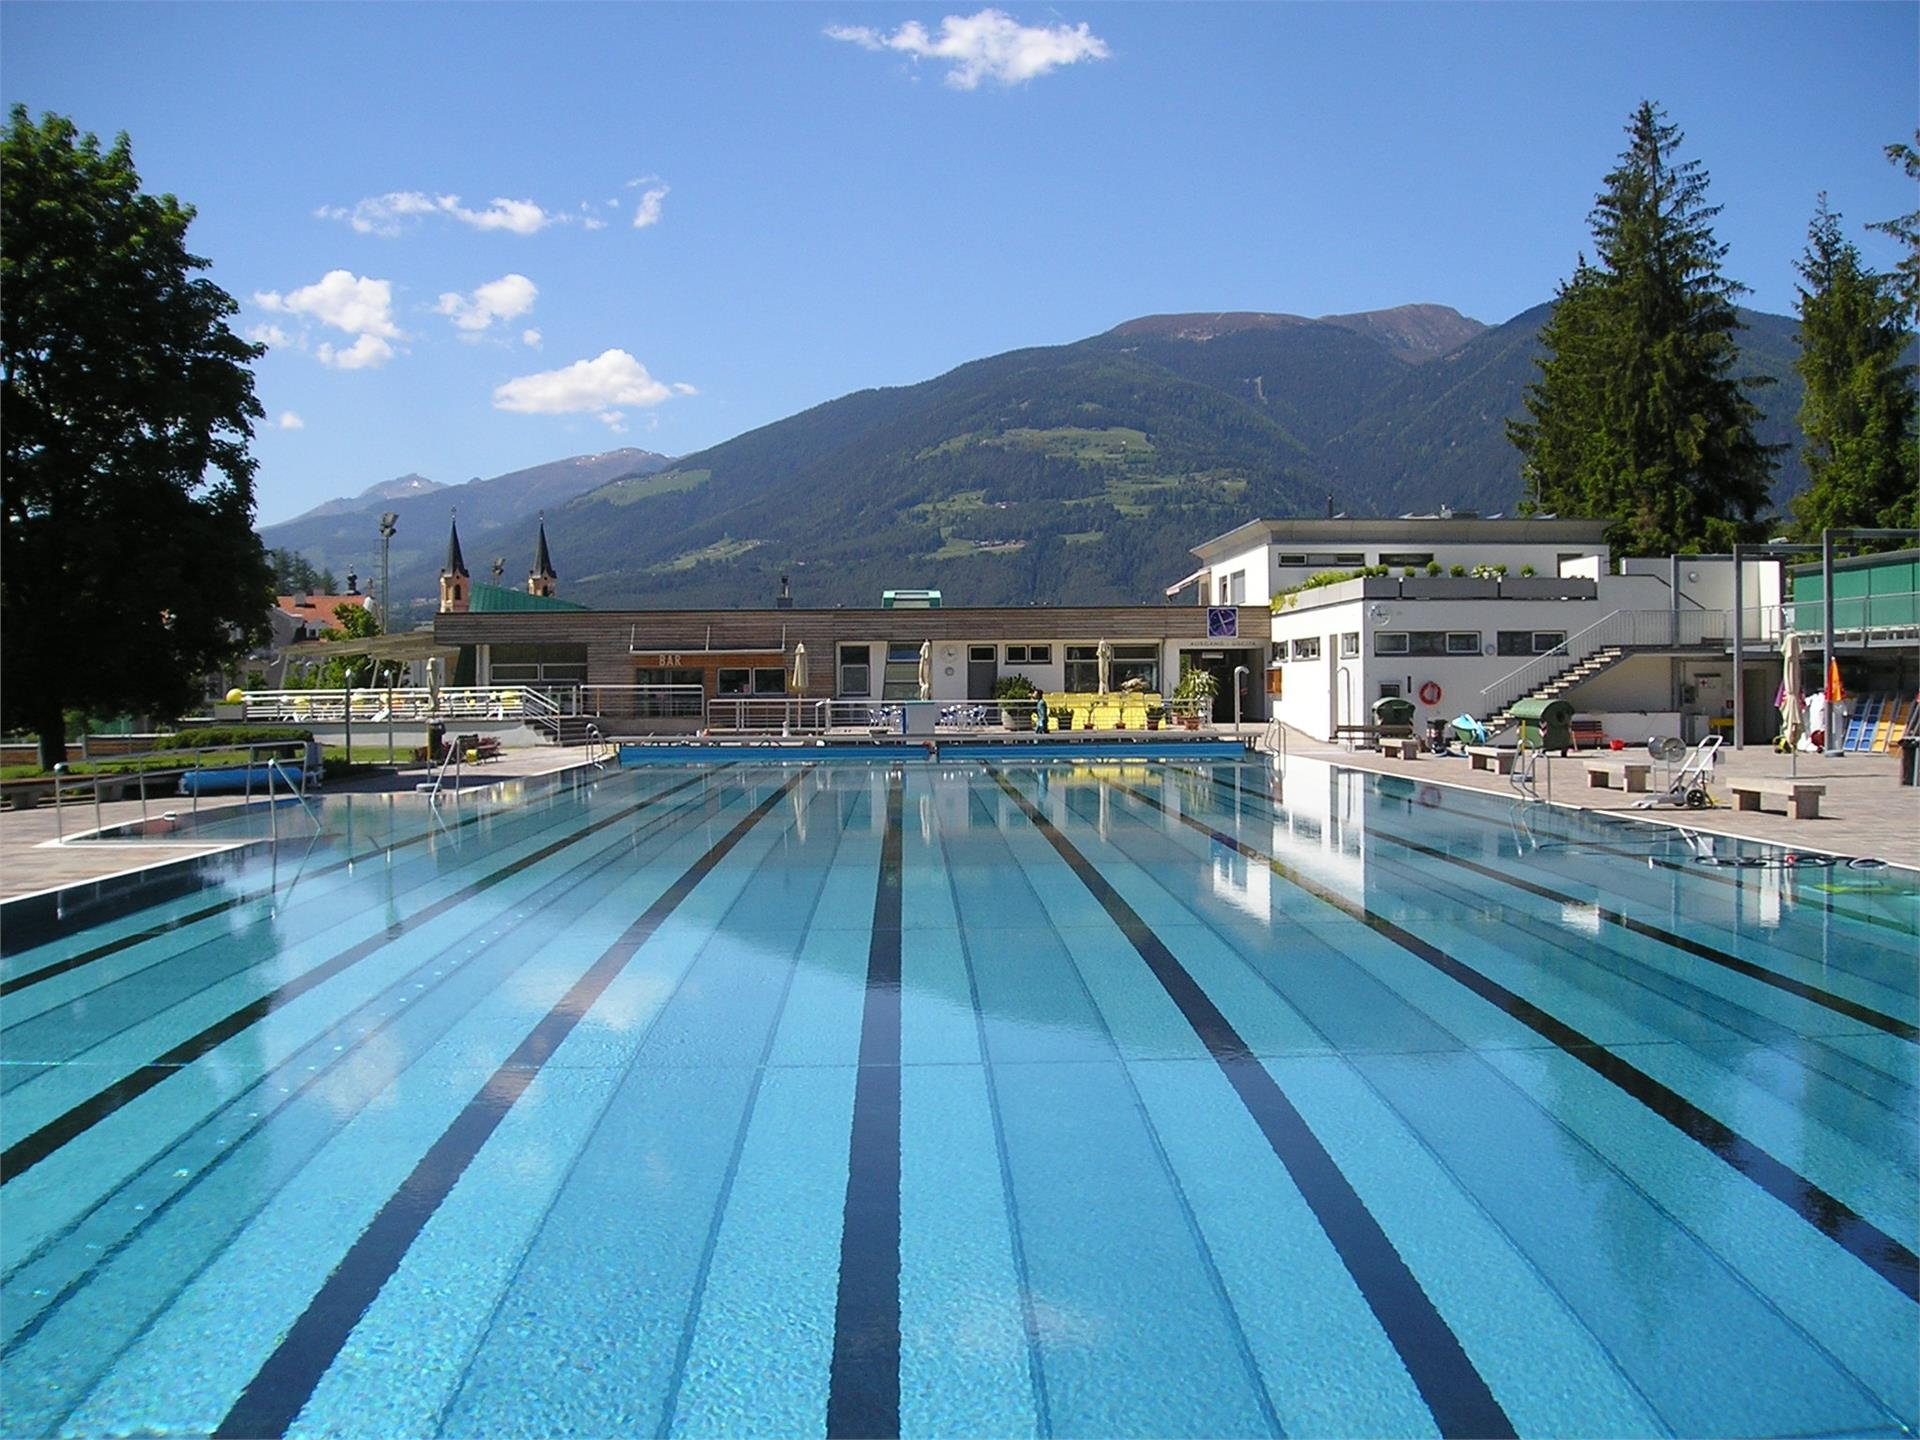 Piscina all'aperto di Brunico